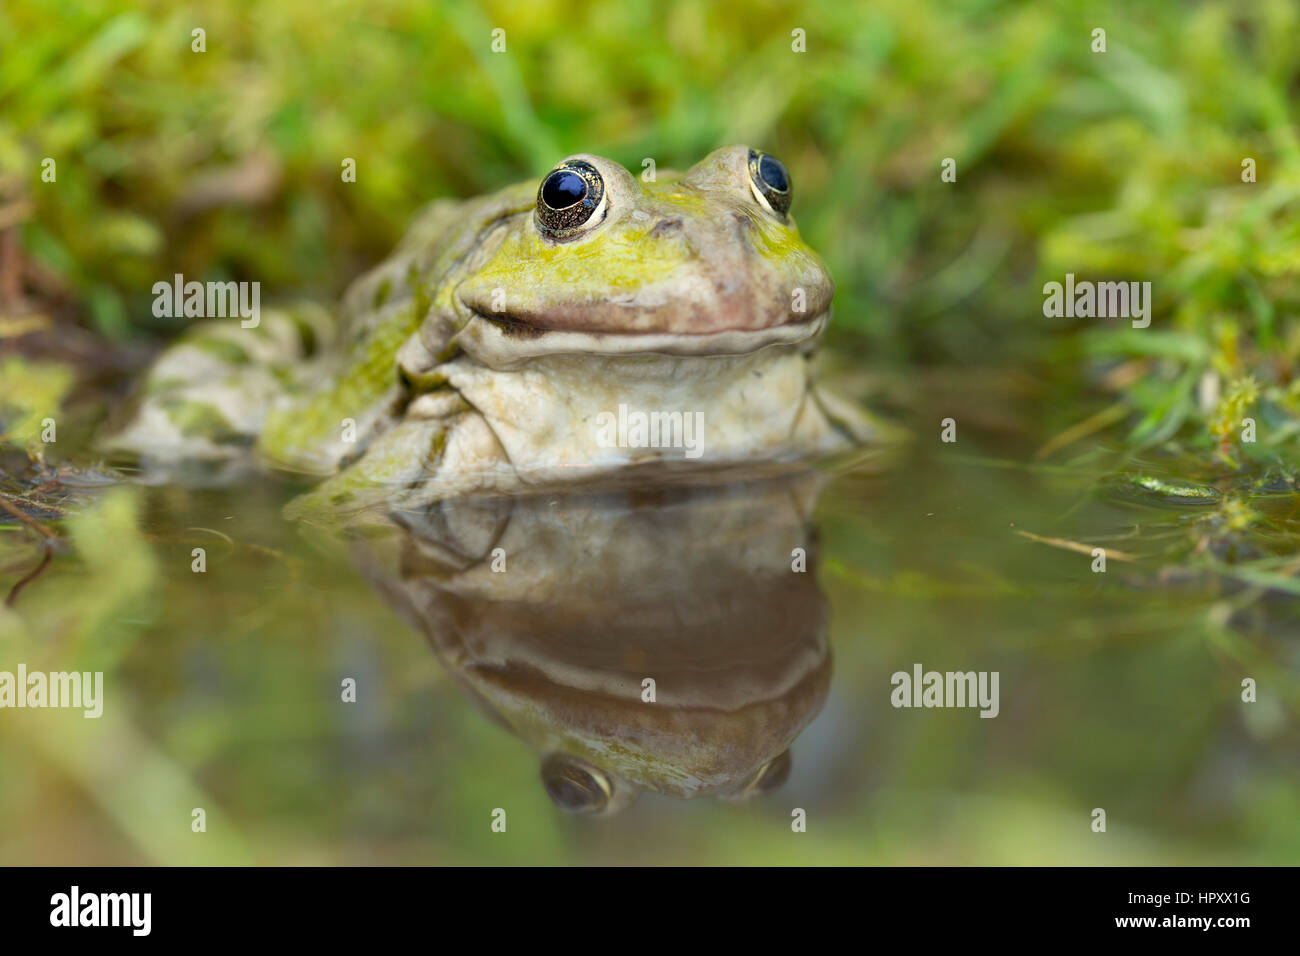 Marash Frog; Pelophylax ridibundus Single in Water UK - Stock Image